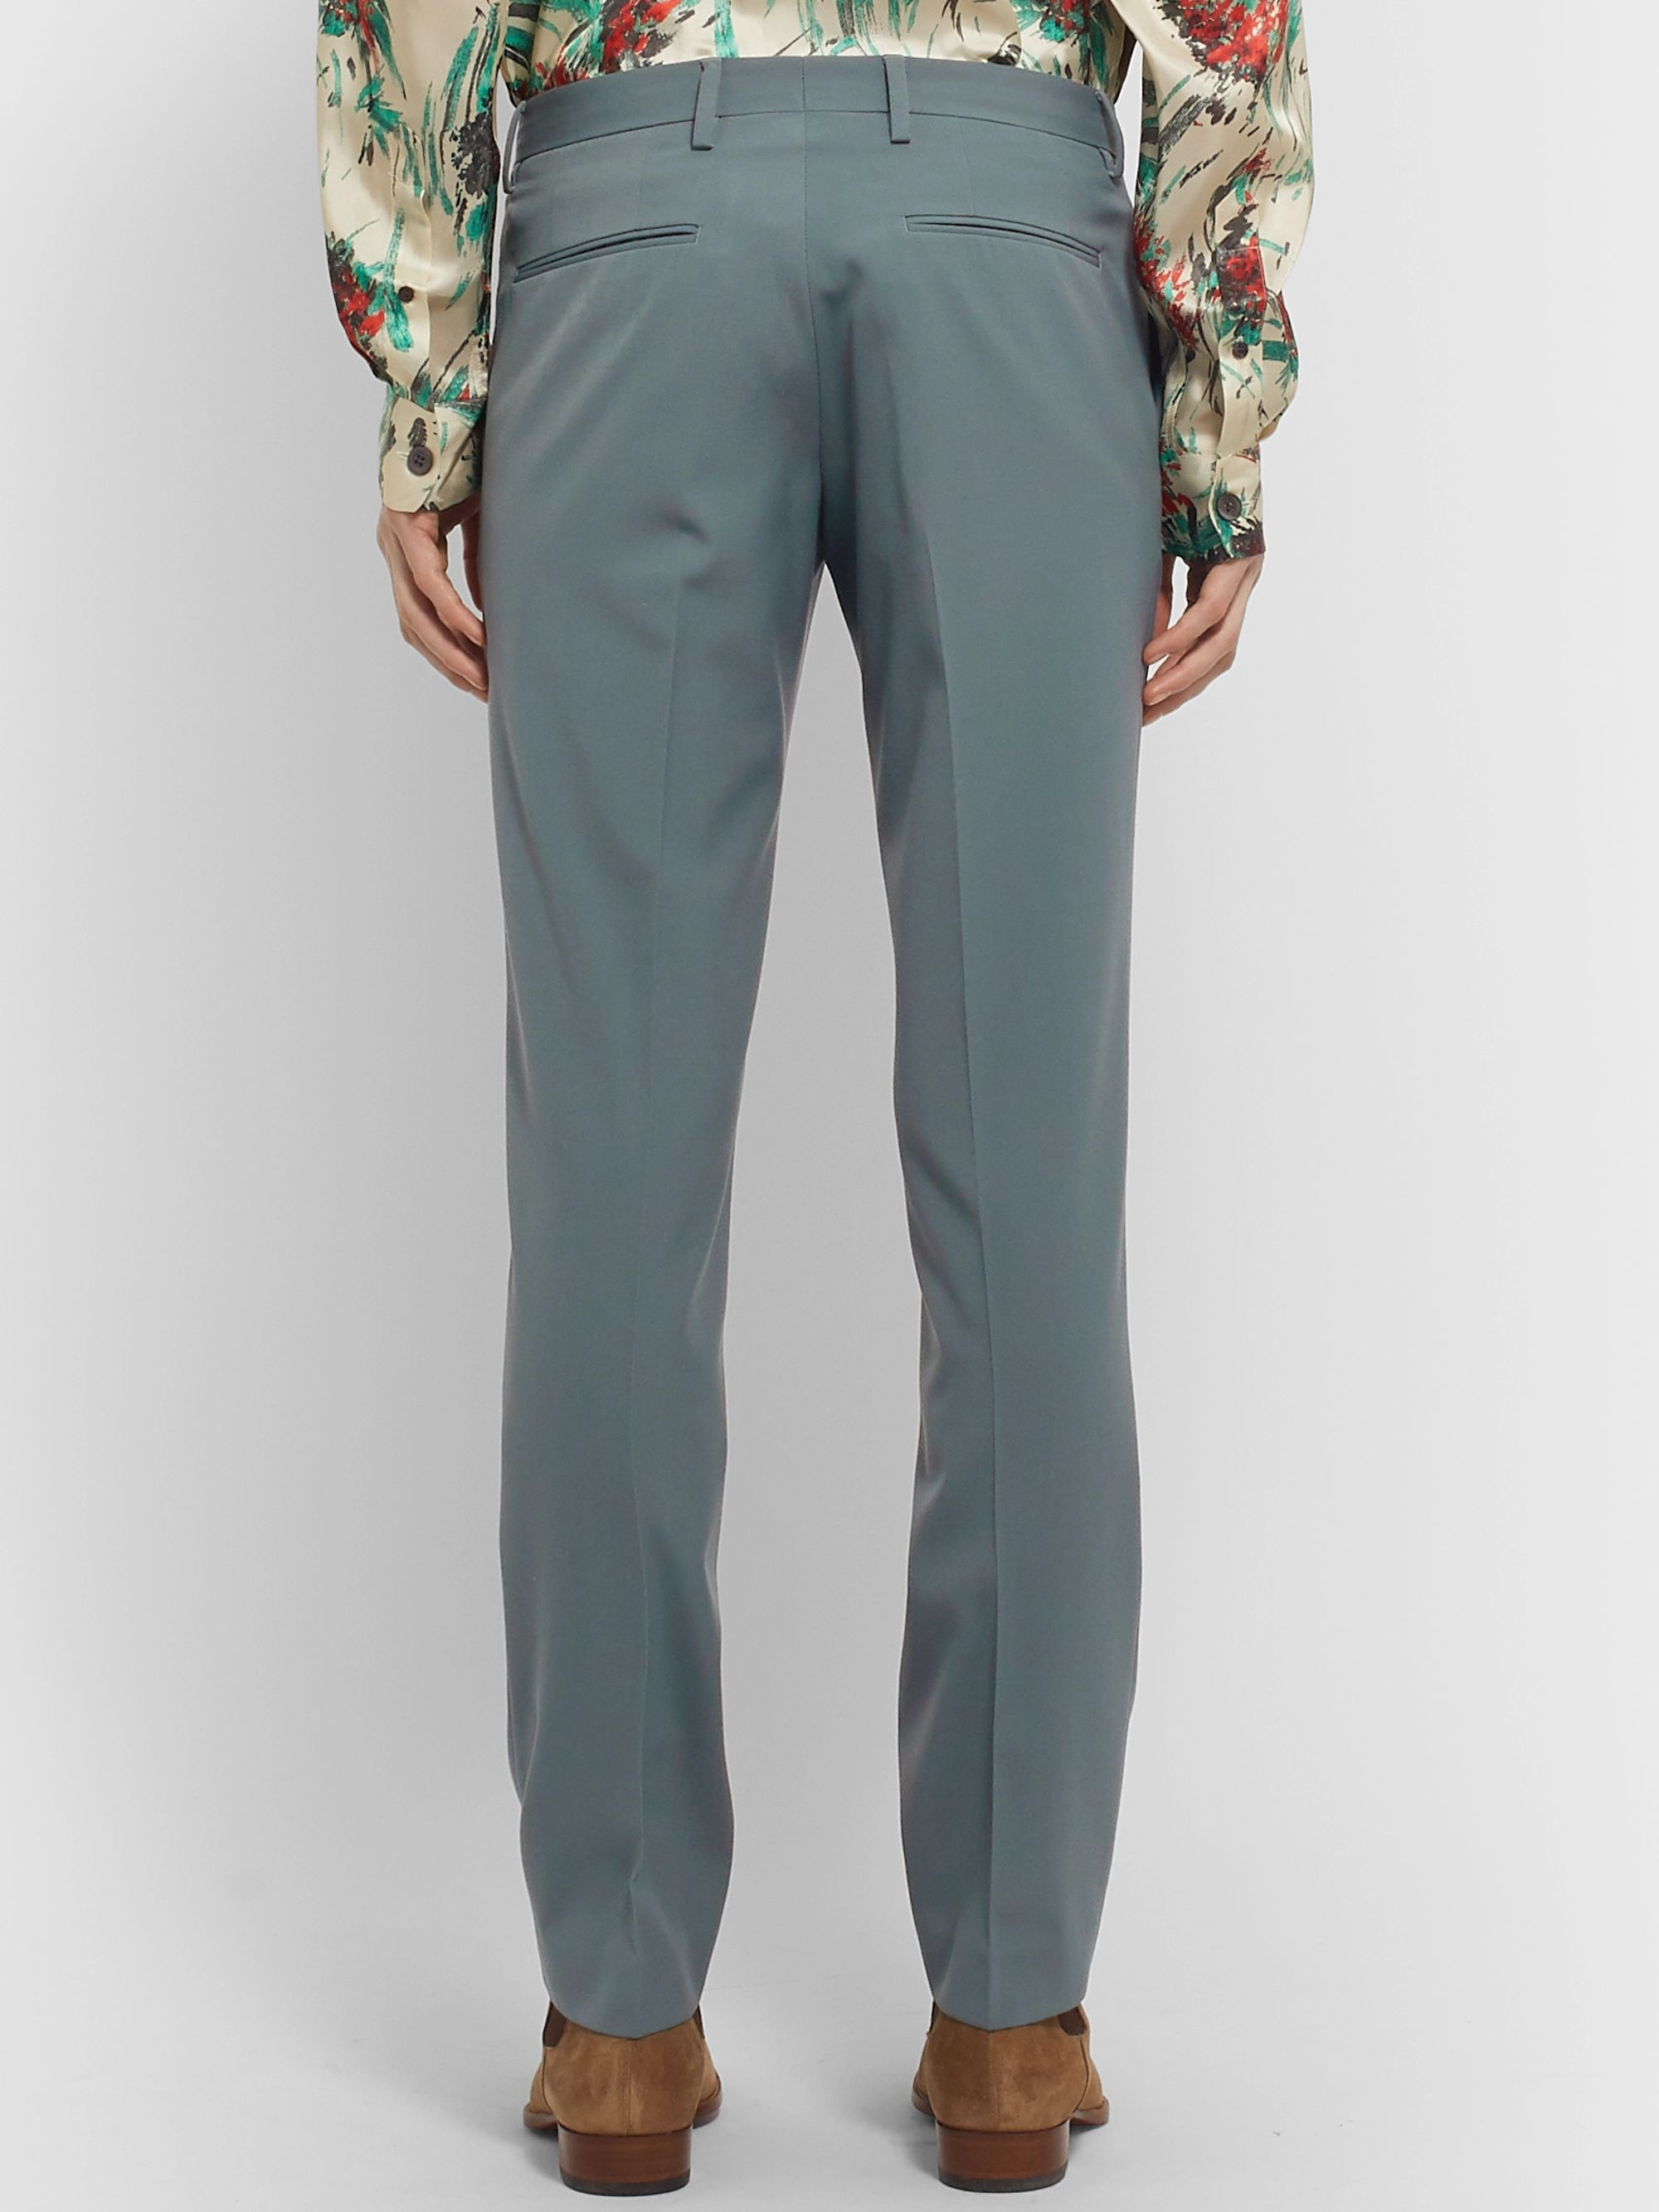 Dries Van Noten Slate-Blue Slim-Fit Wool-Blend Trousers